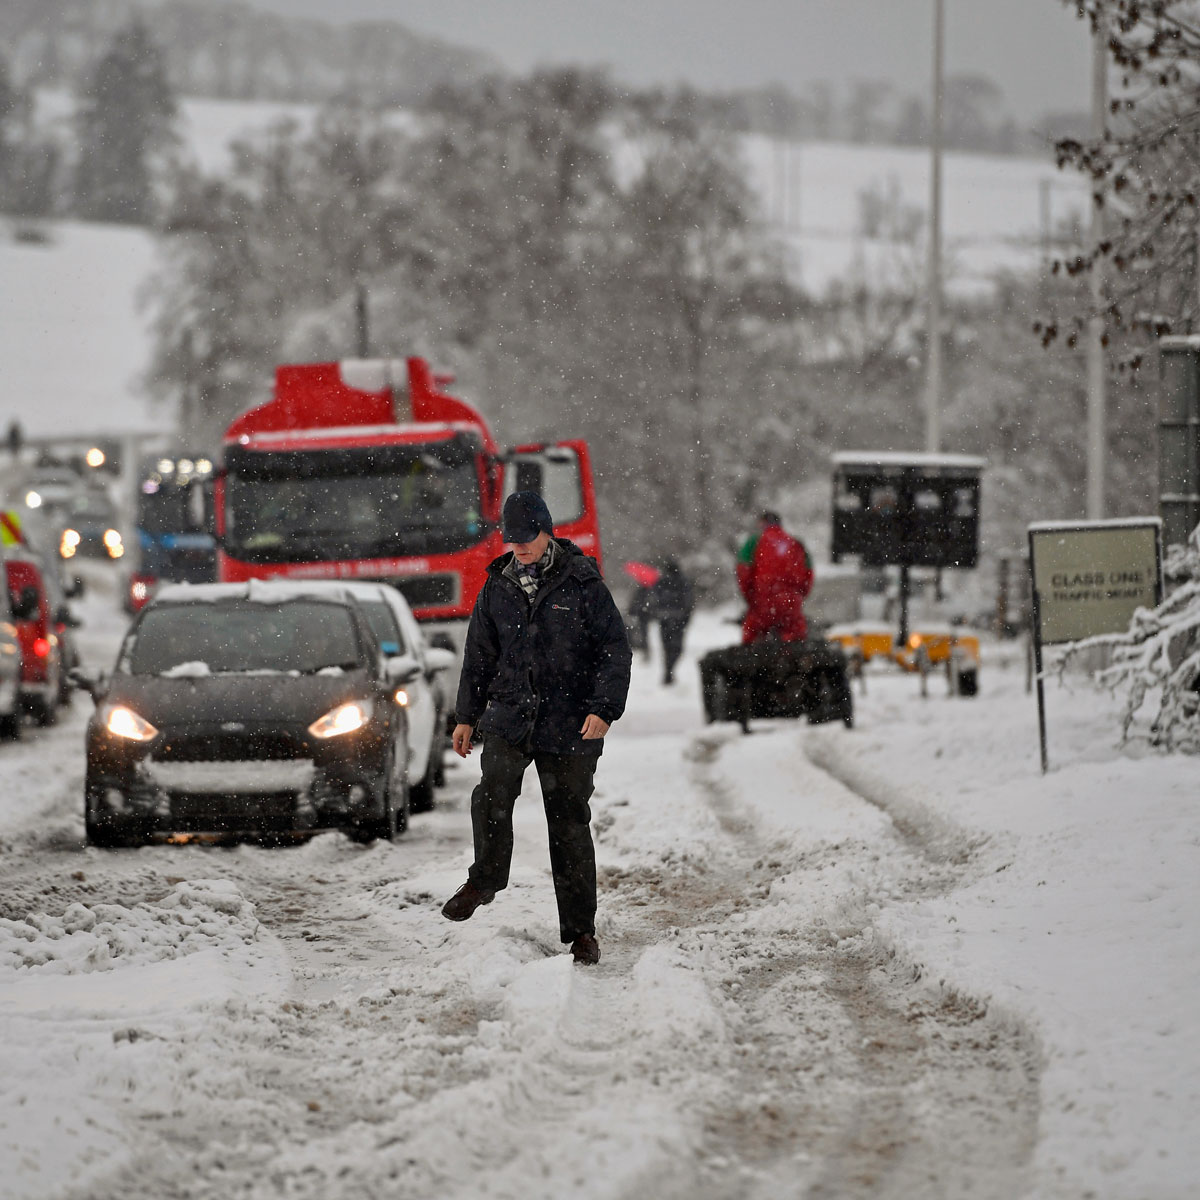 Motorists struggle through the snow in Balfron, Scotland. Travel disruption affected many parts of Scotland as Storm Doris drove through the UK. [Jeff J Mitchell/Getty Images]